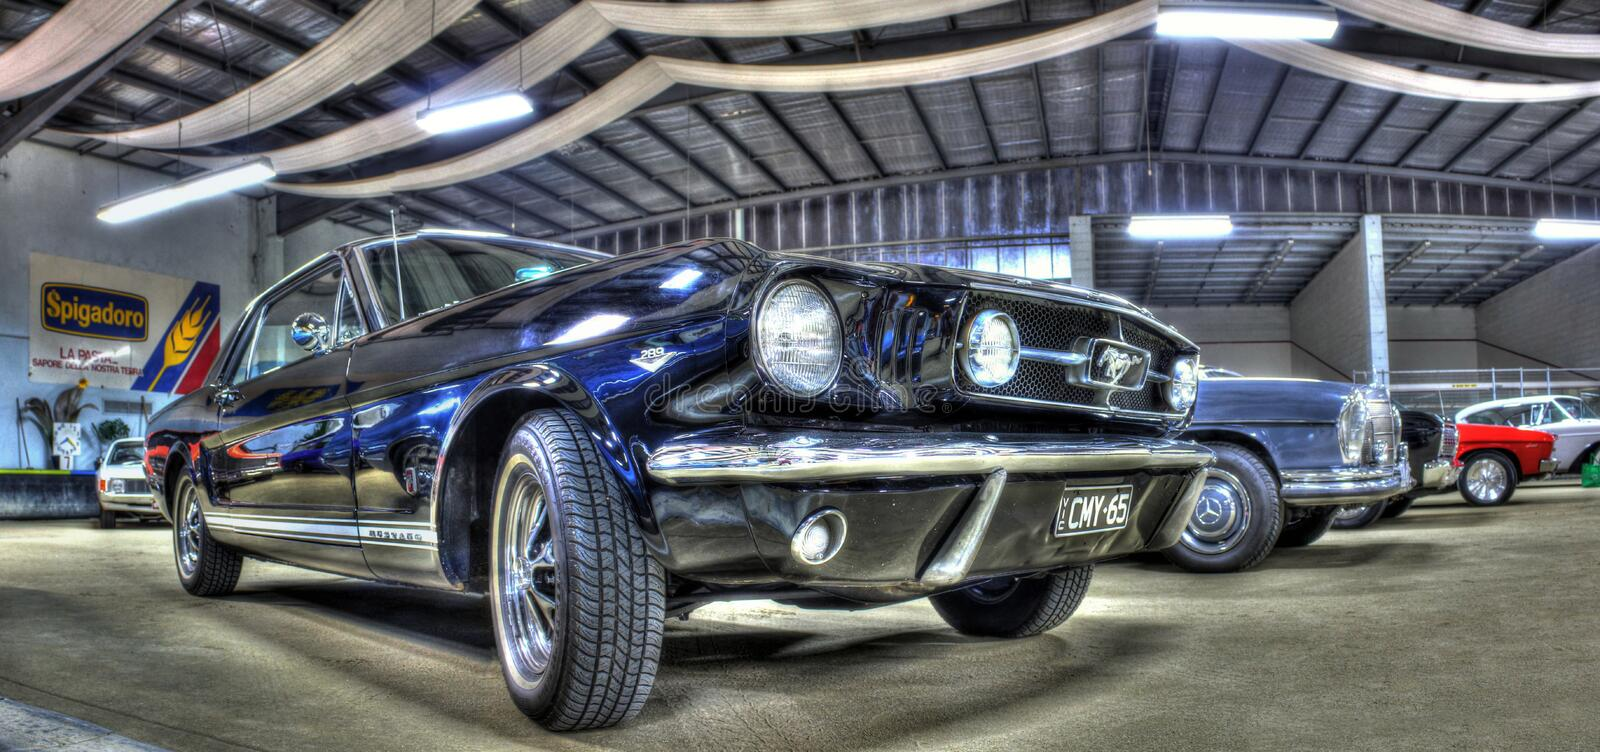 Classic black Ford Mustang stock photography